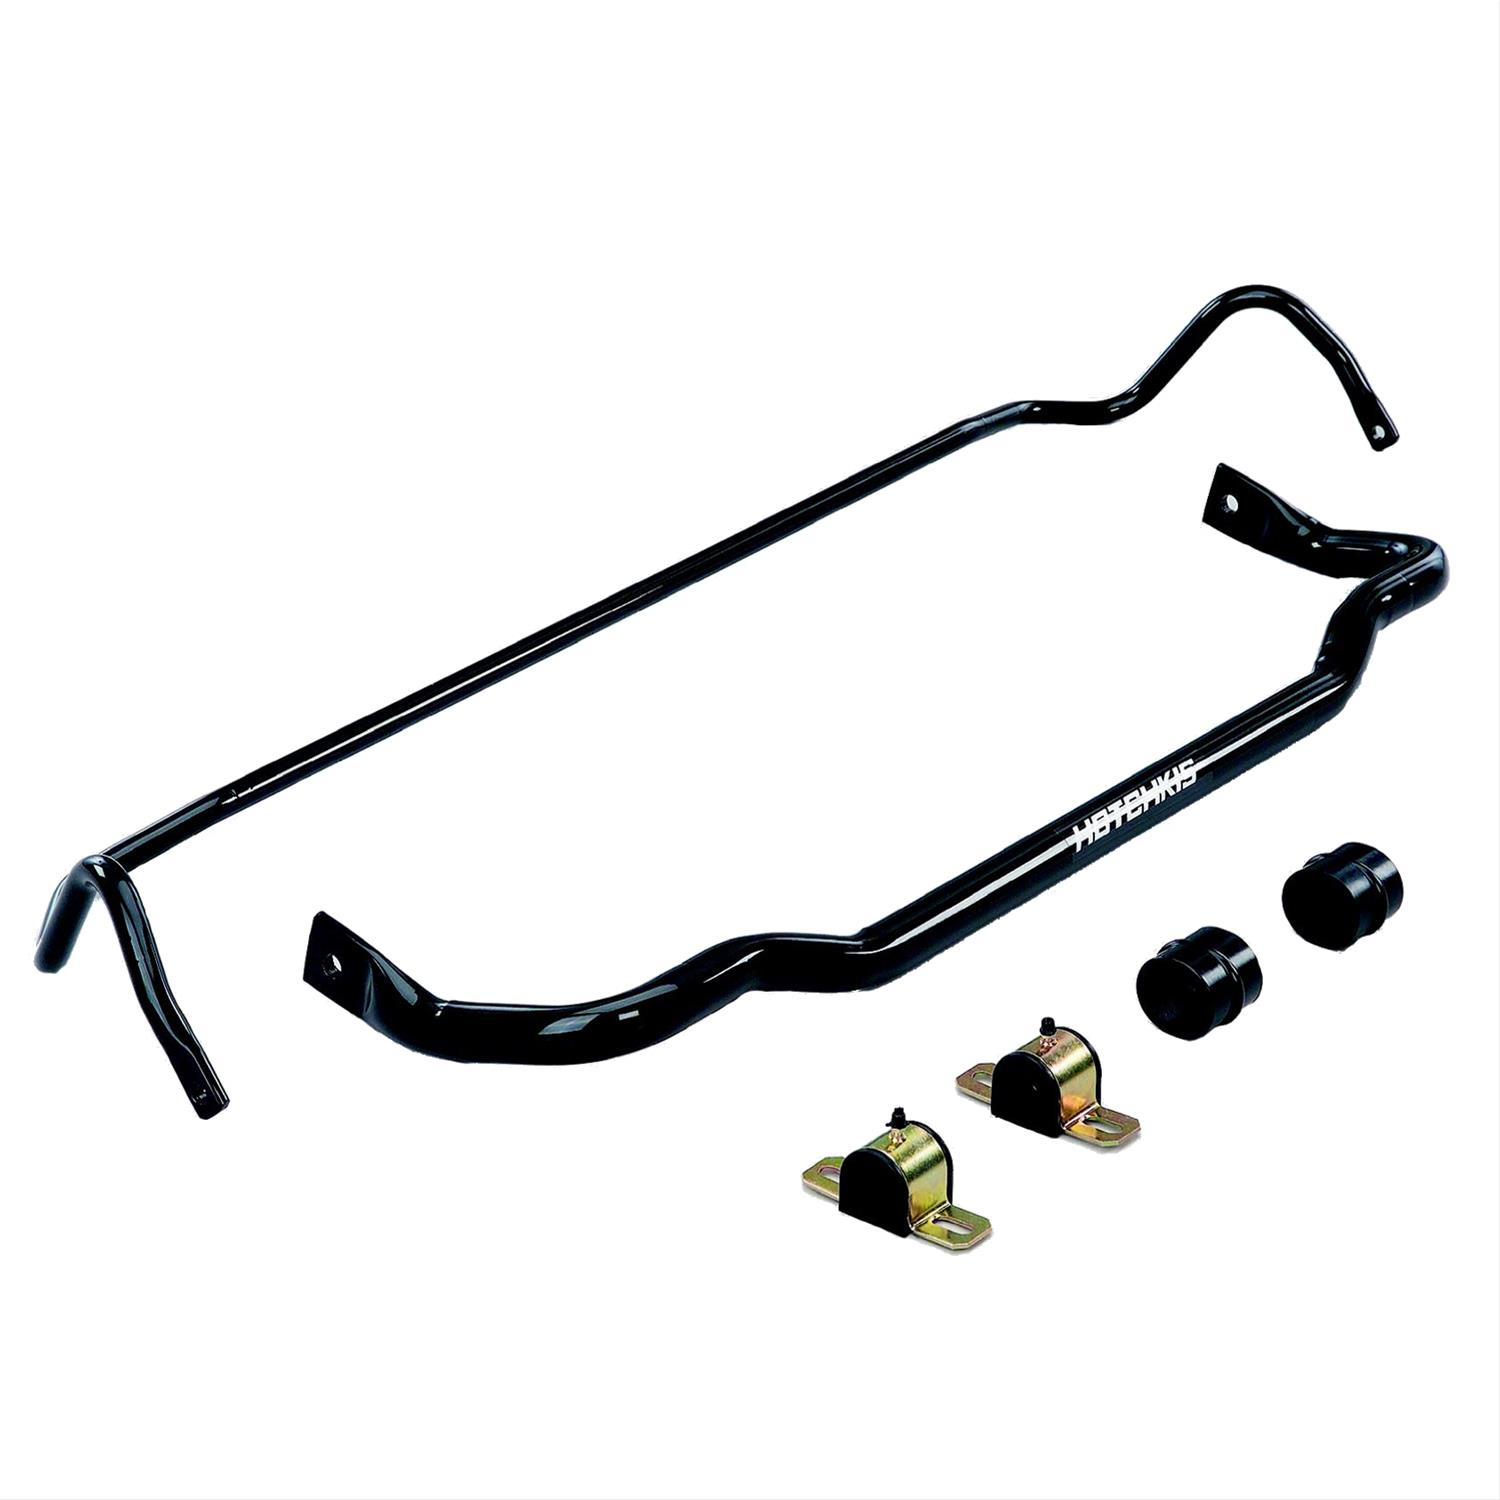 Hotchkis Anti-Sway Bar Kit 05-10 Charger,Magnum,300 RWD